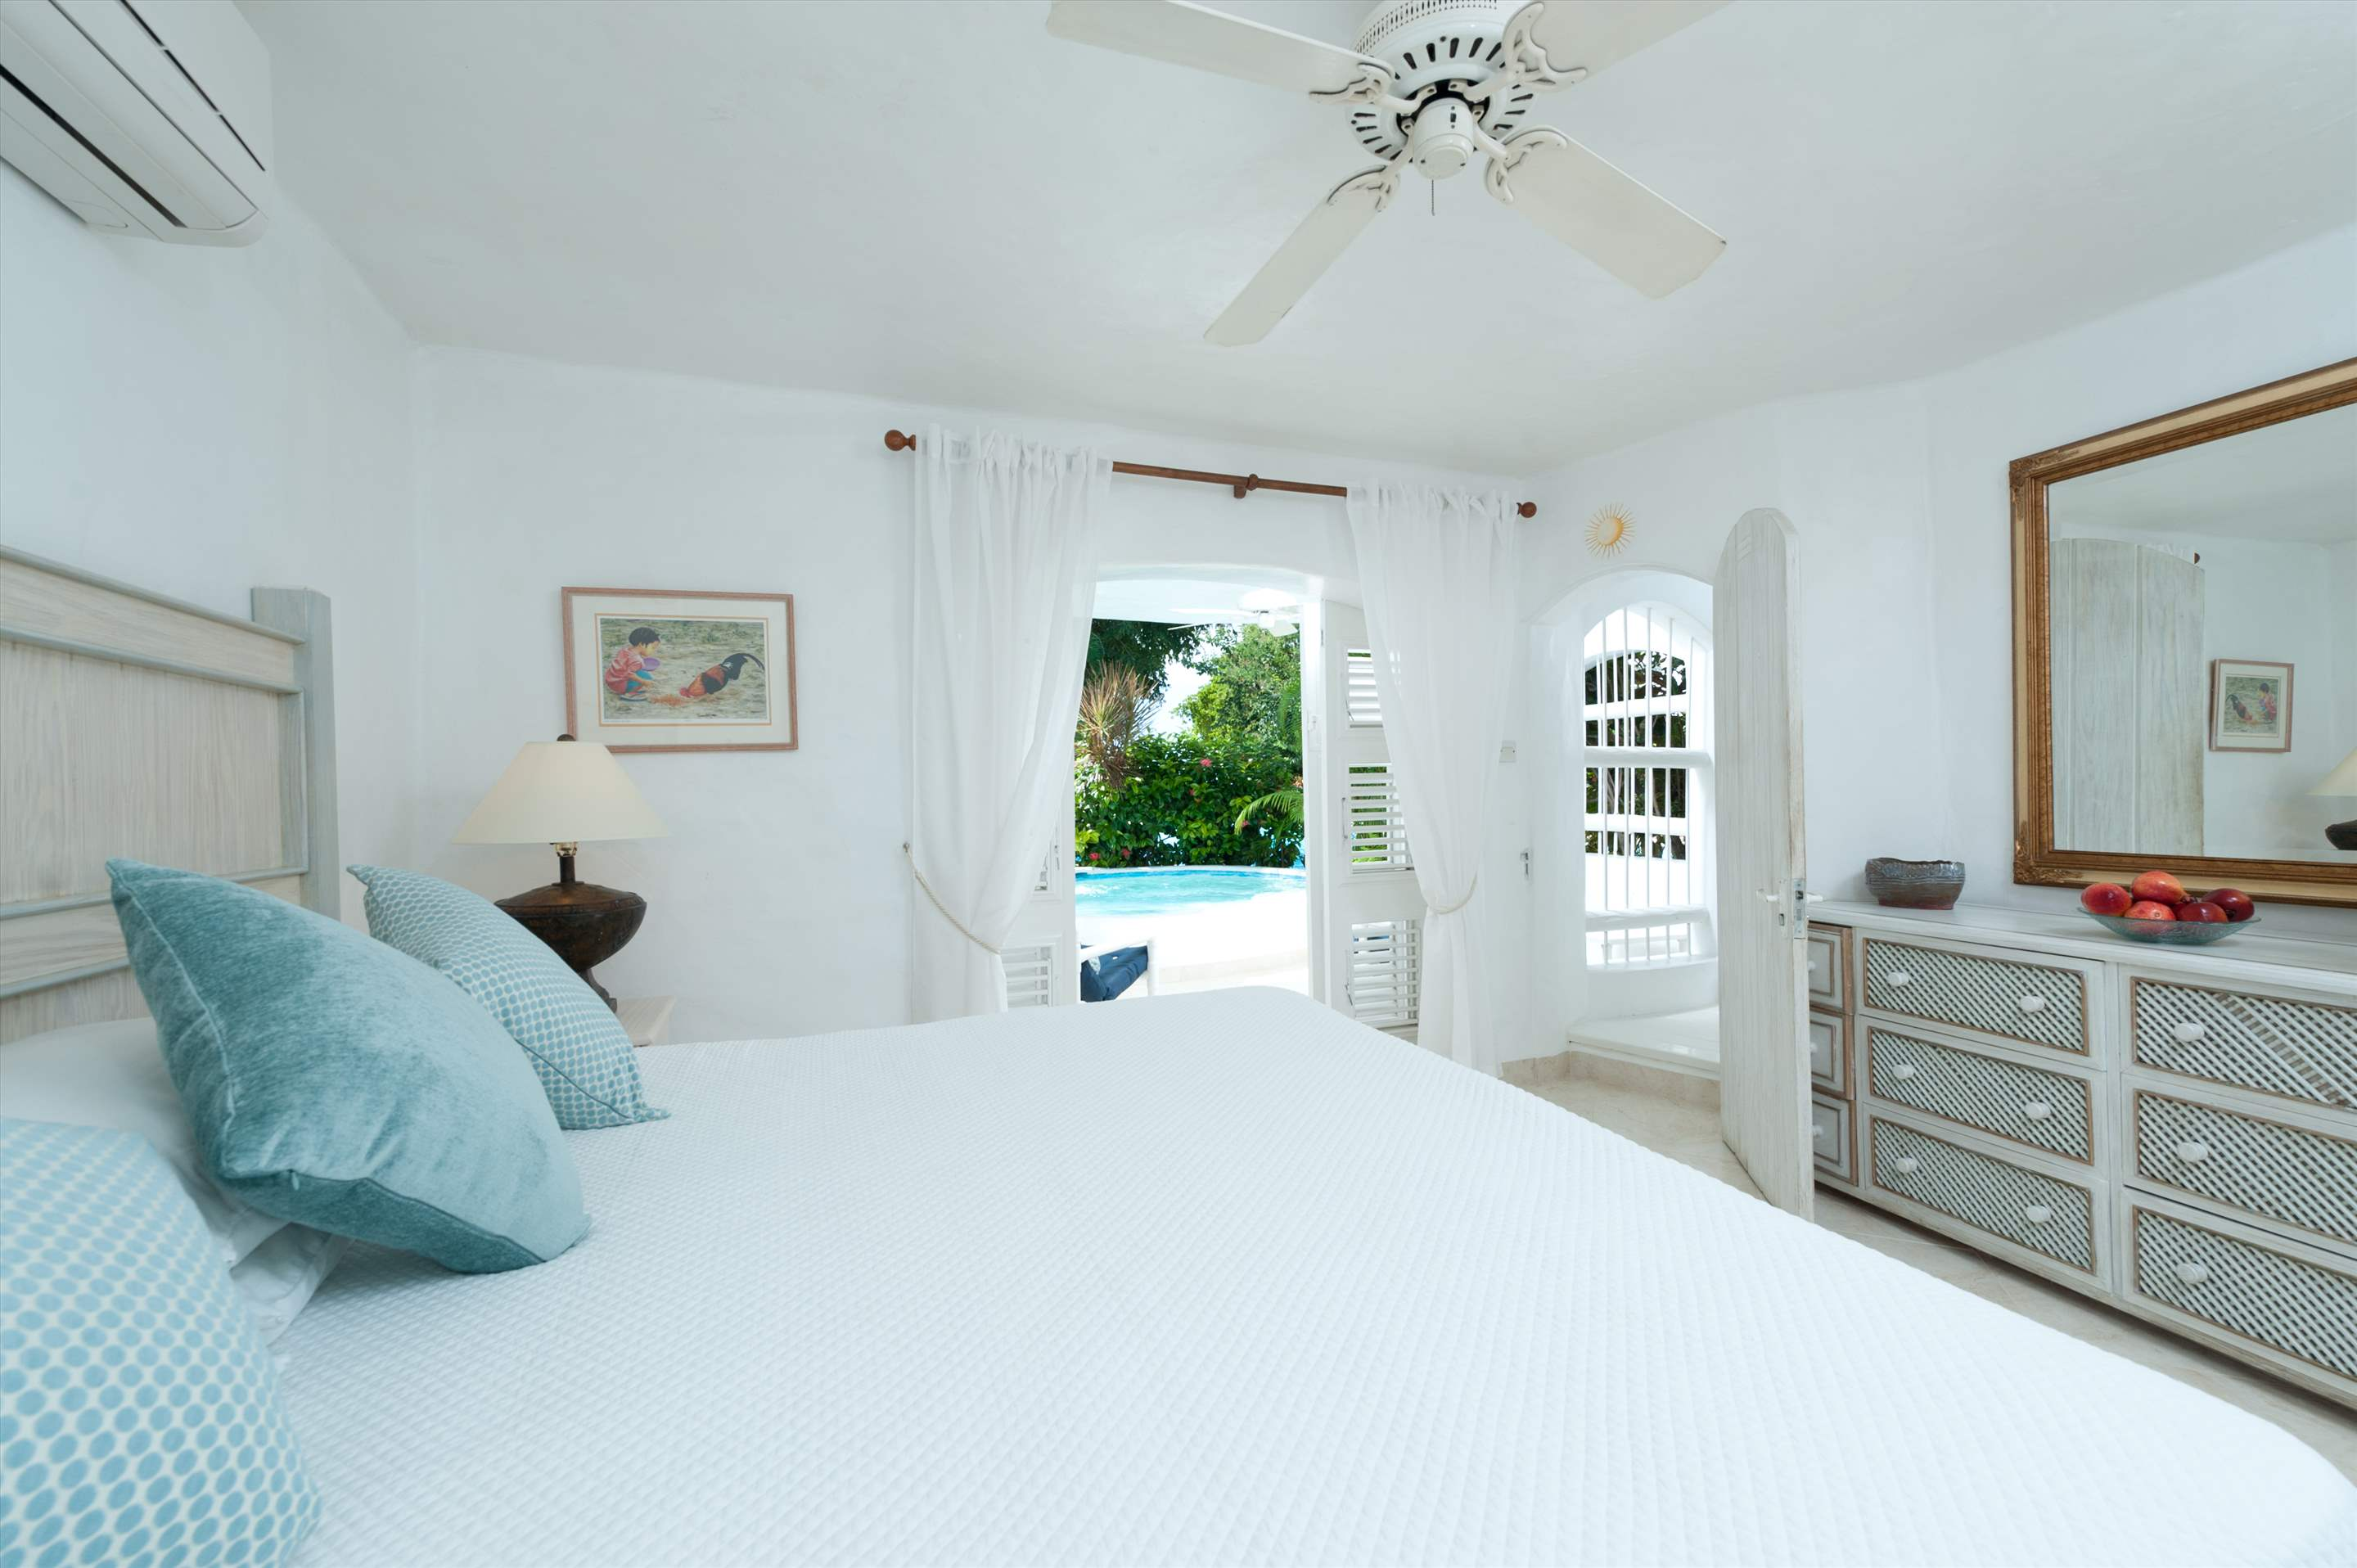 Merlin Bay Gingerbread, 3 bedroom villa in St. James & West Coast, Barbados Photo #15